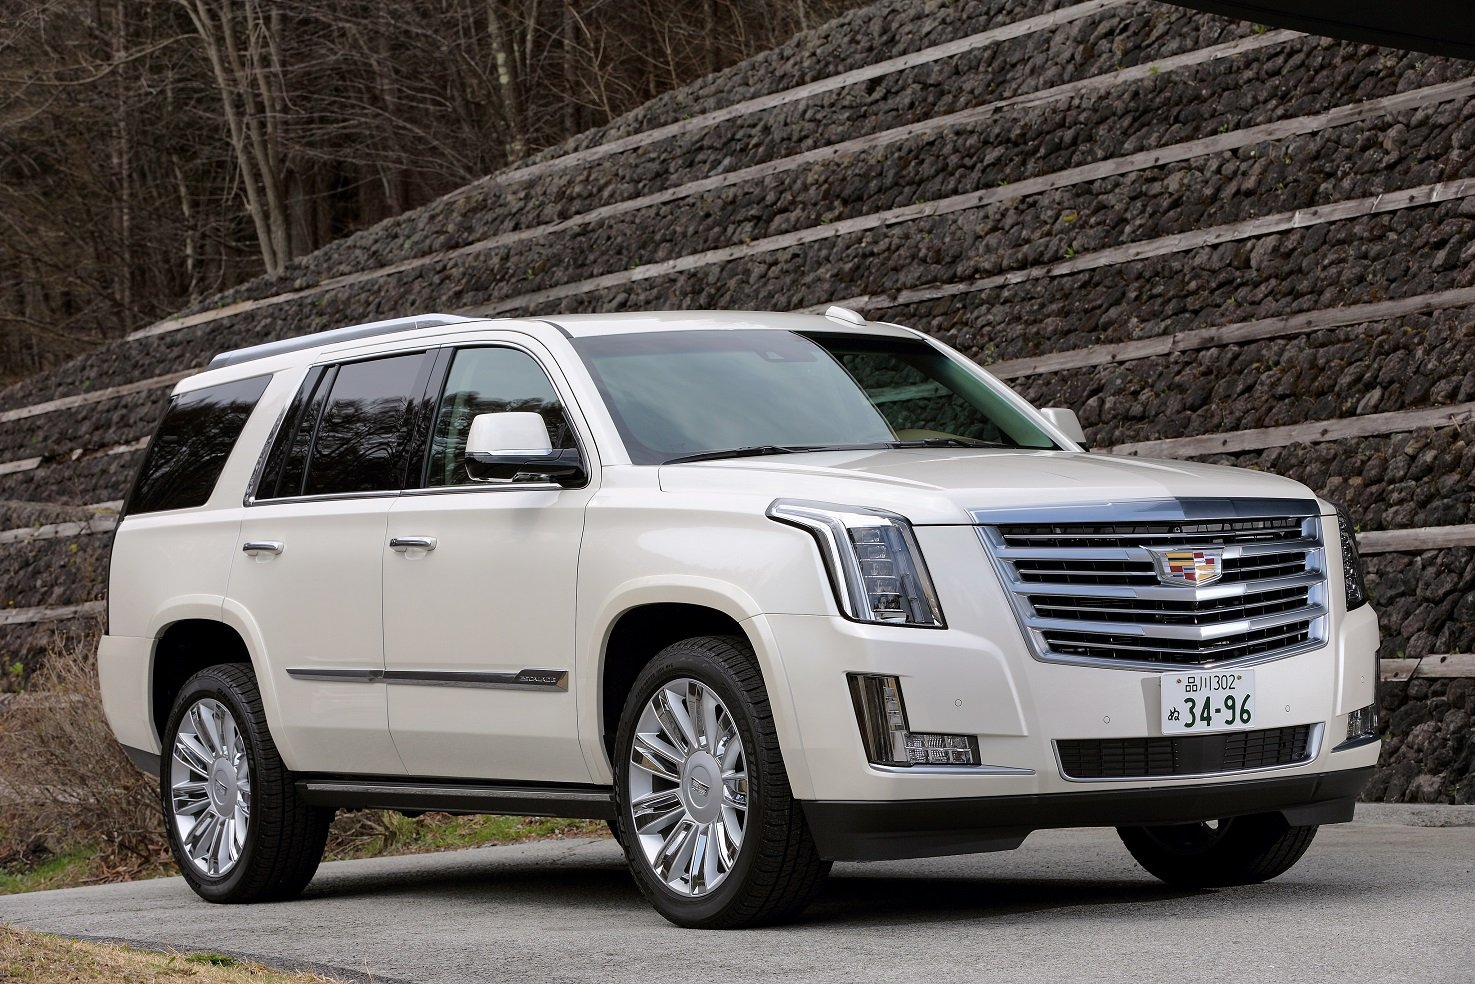 cadillac escalade platinum jp spec cars suv white 2015. Black Bedroom Furniture Sets. Home Design Ideas